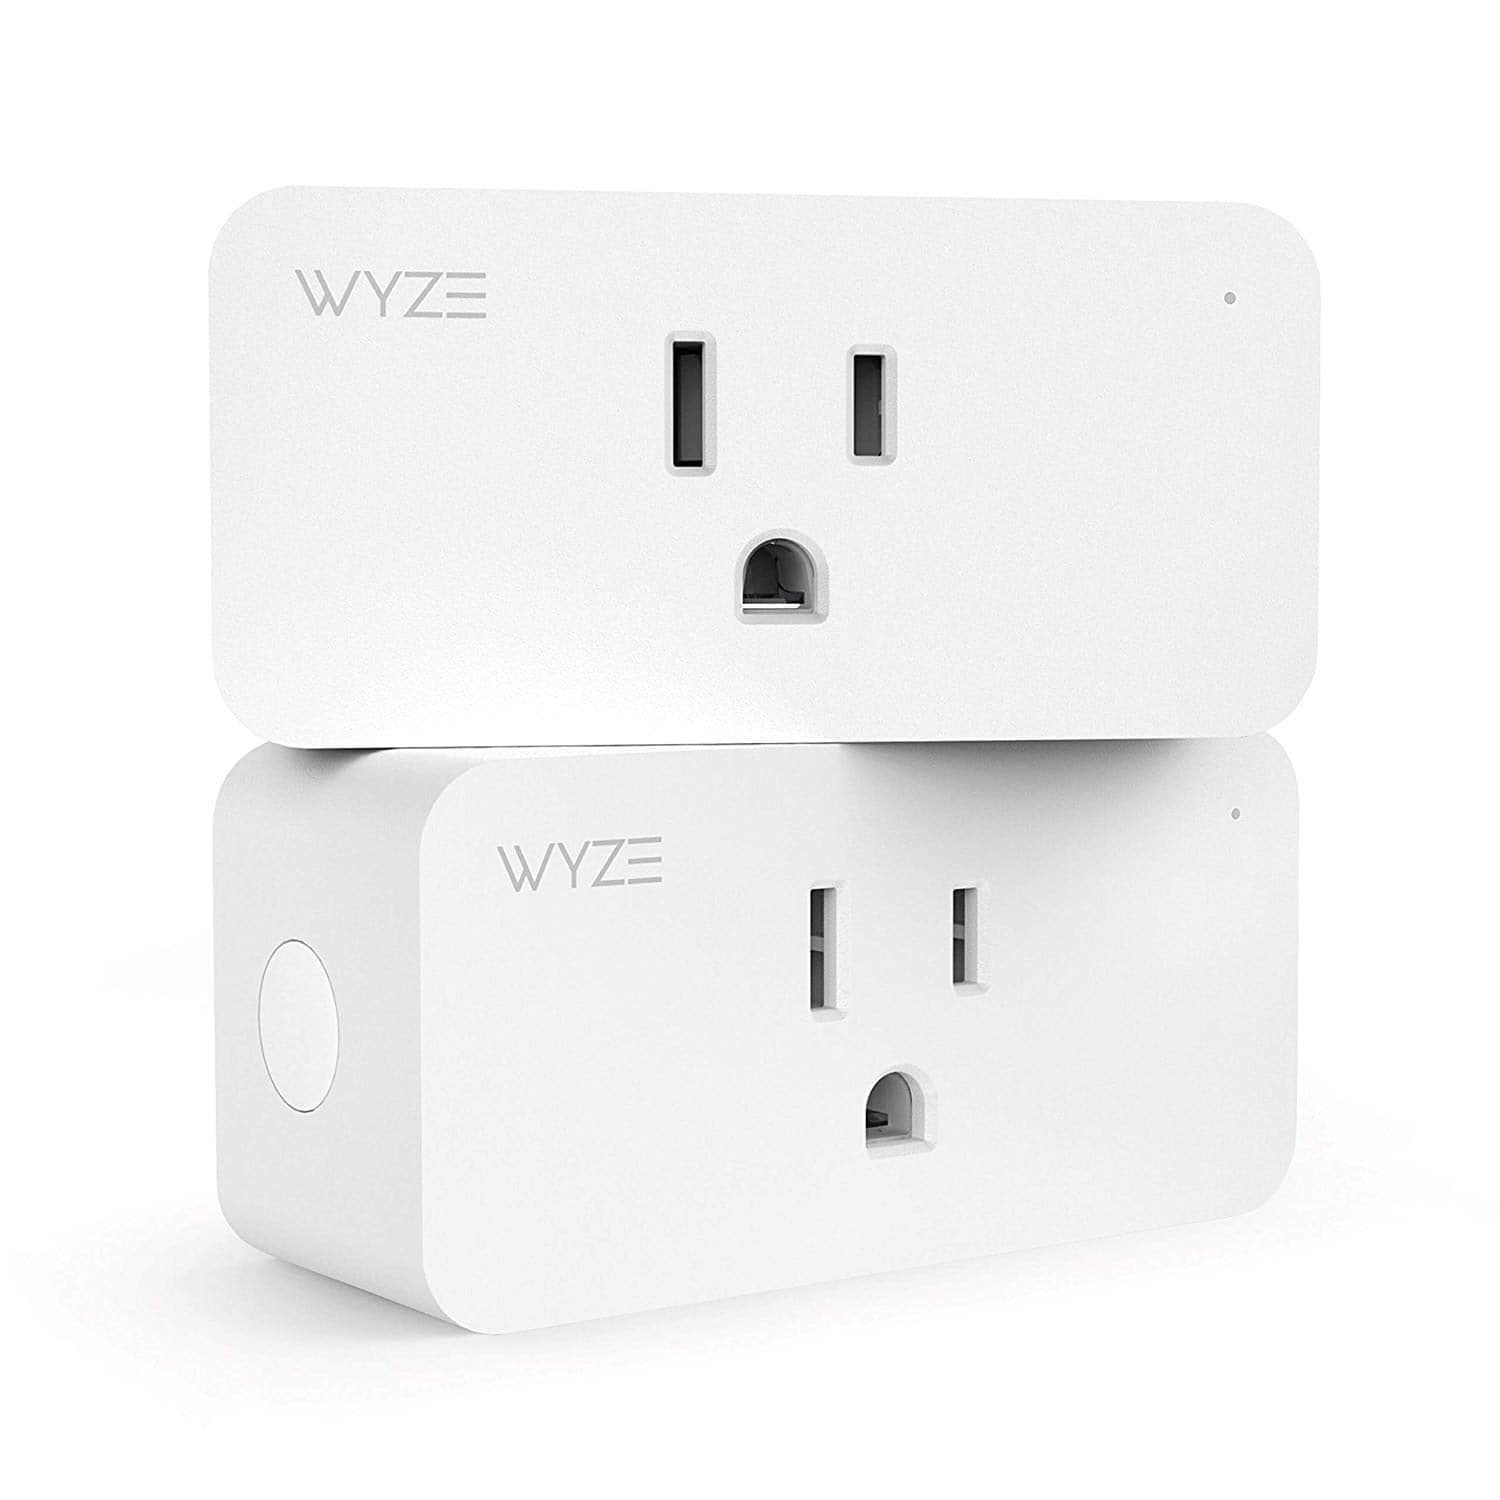 Wyze Smart Plugs - 2 Pack @ Amazon: $17.88 + Free Prime Shipping